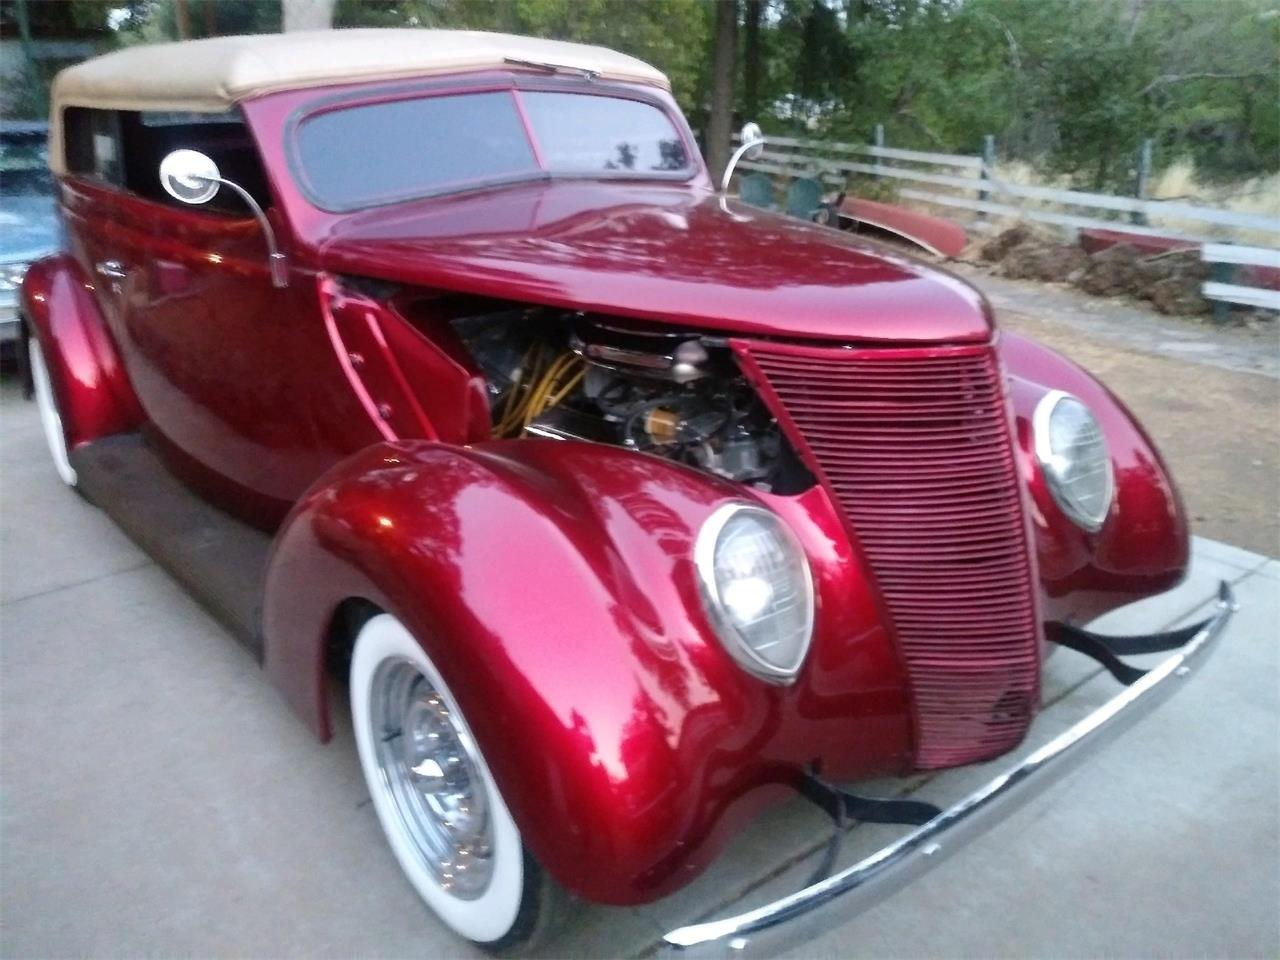 Large Picture of 1937 Ford Roadster - $18,000.00 Offered by a Private Seller - OFNP